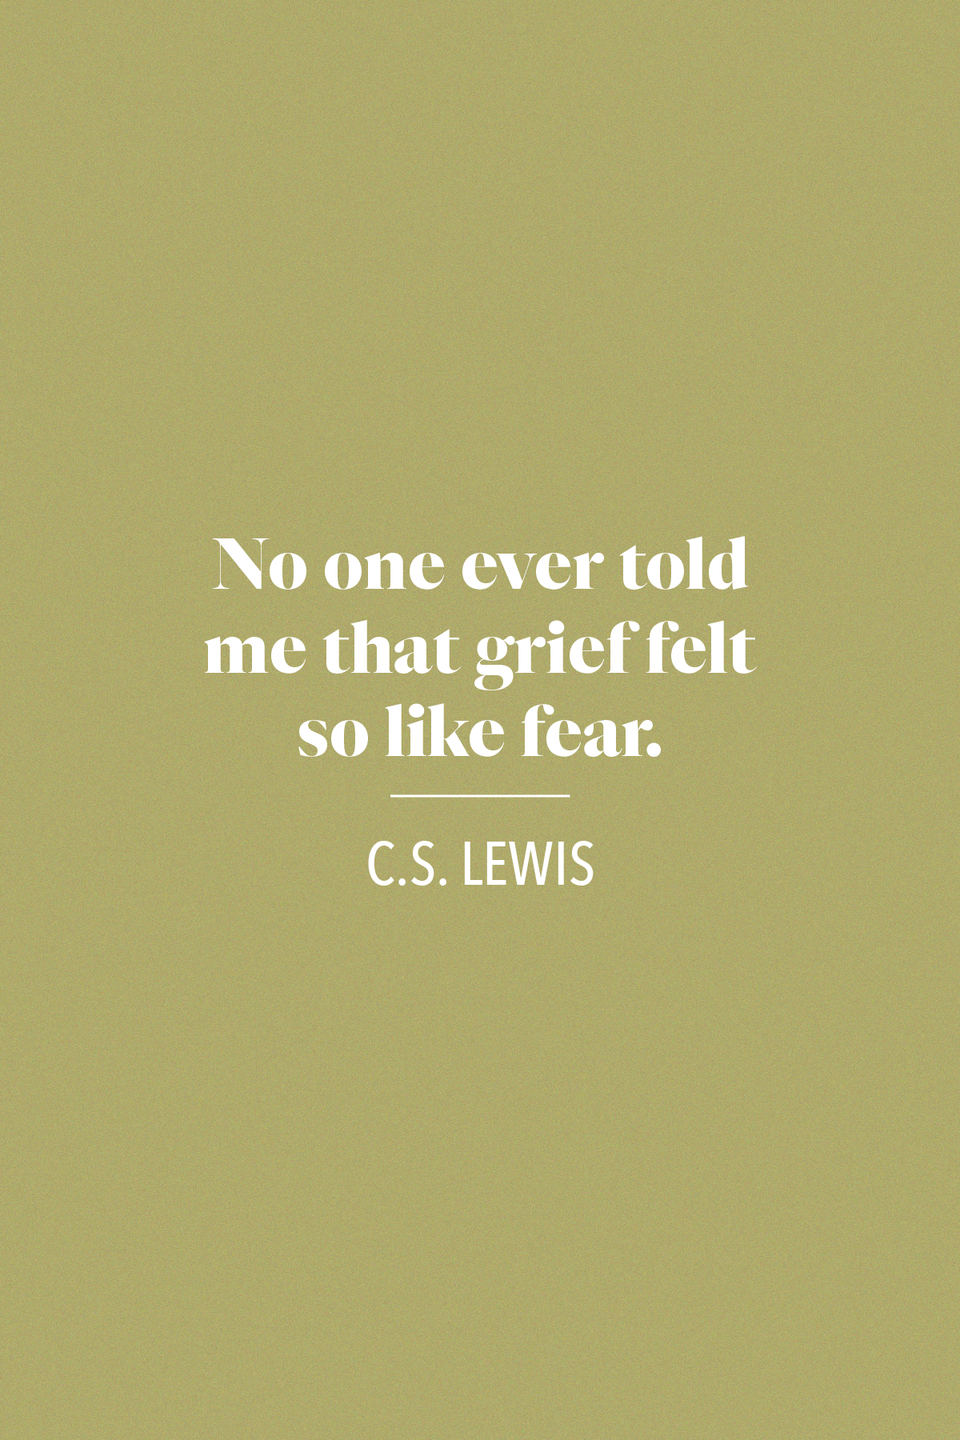 "<p>""No one ever told me that grief felt so like fear,"" British writer and theologian C.S. Lewis wrote in his book <em>A Grief Observed</em> in 1961.</p>"